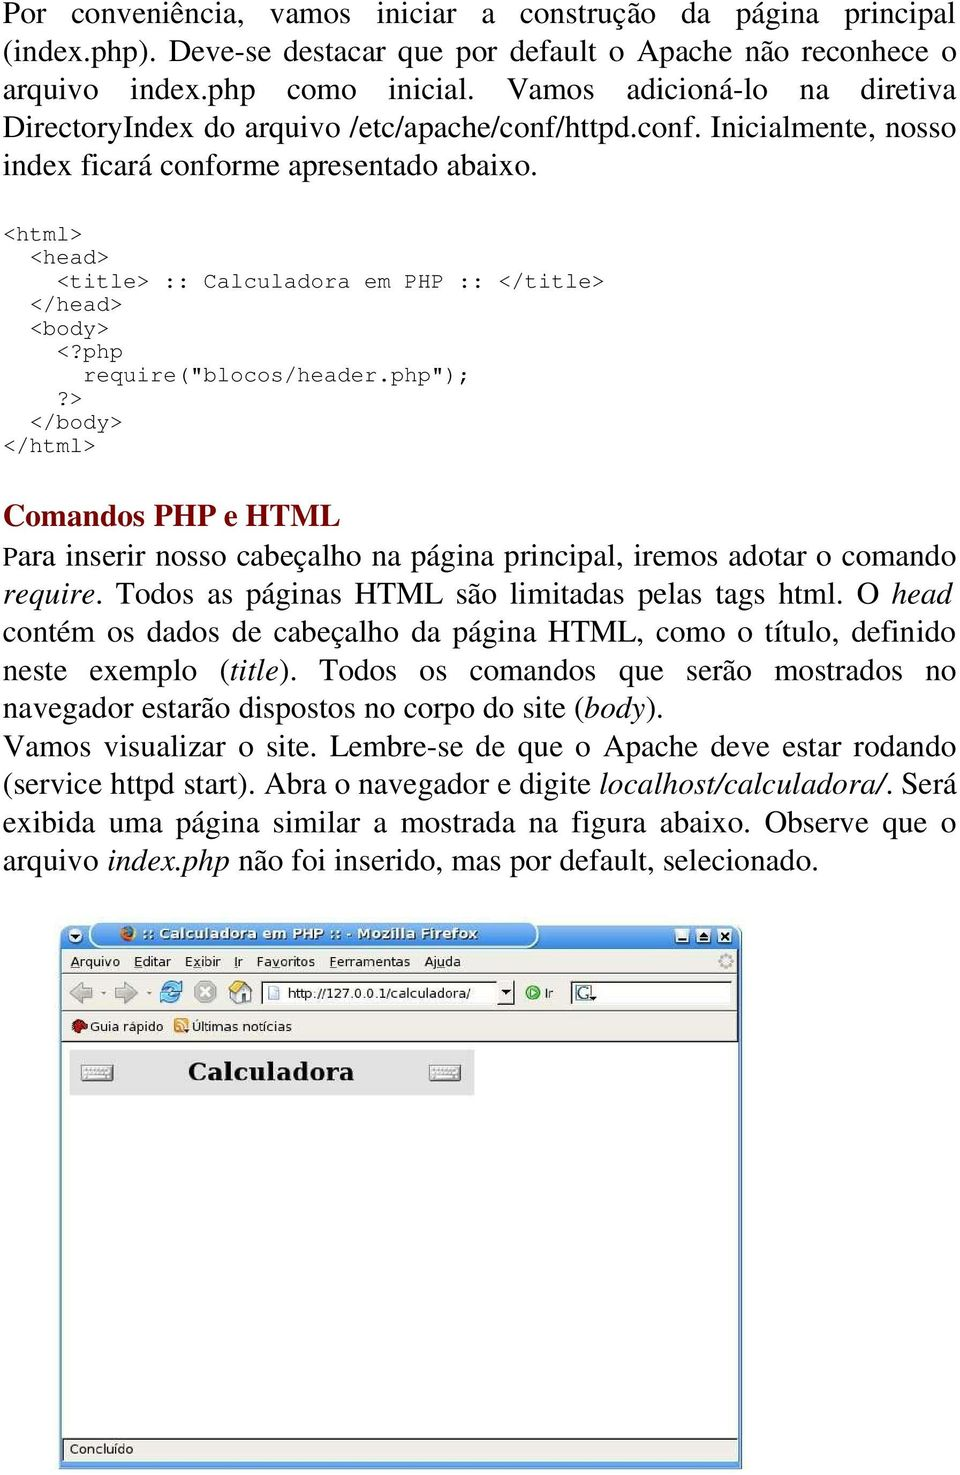 "<html> <head> <title> :: Calculadora em PHP :: </title> </head> <body> require(""blocos/header."